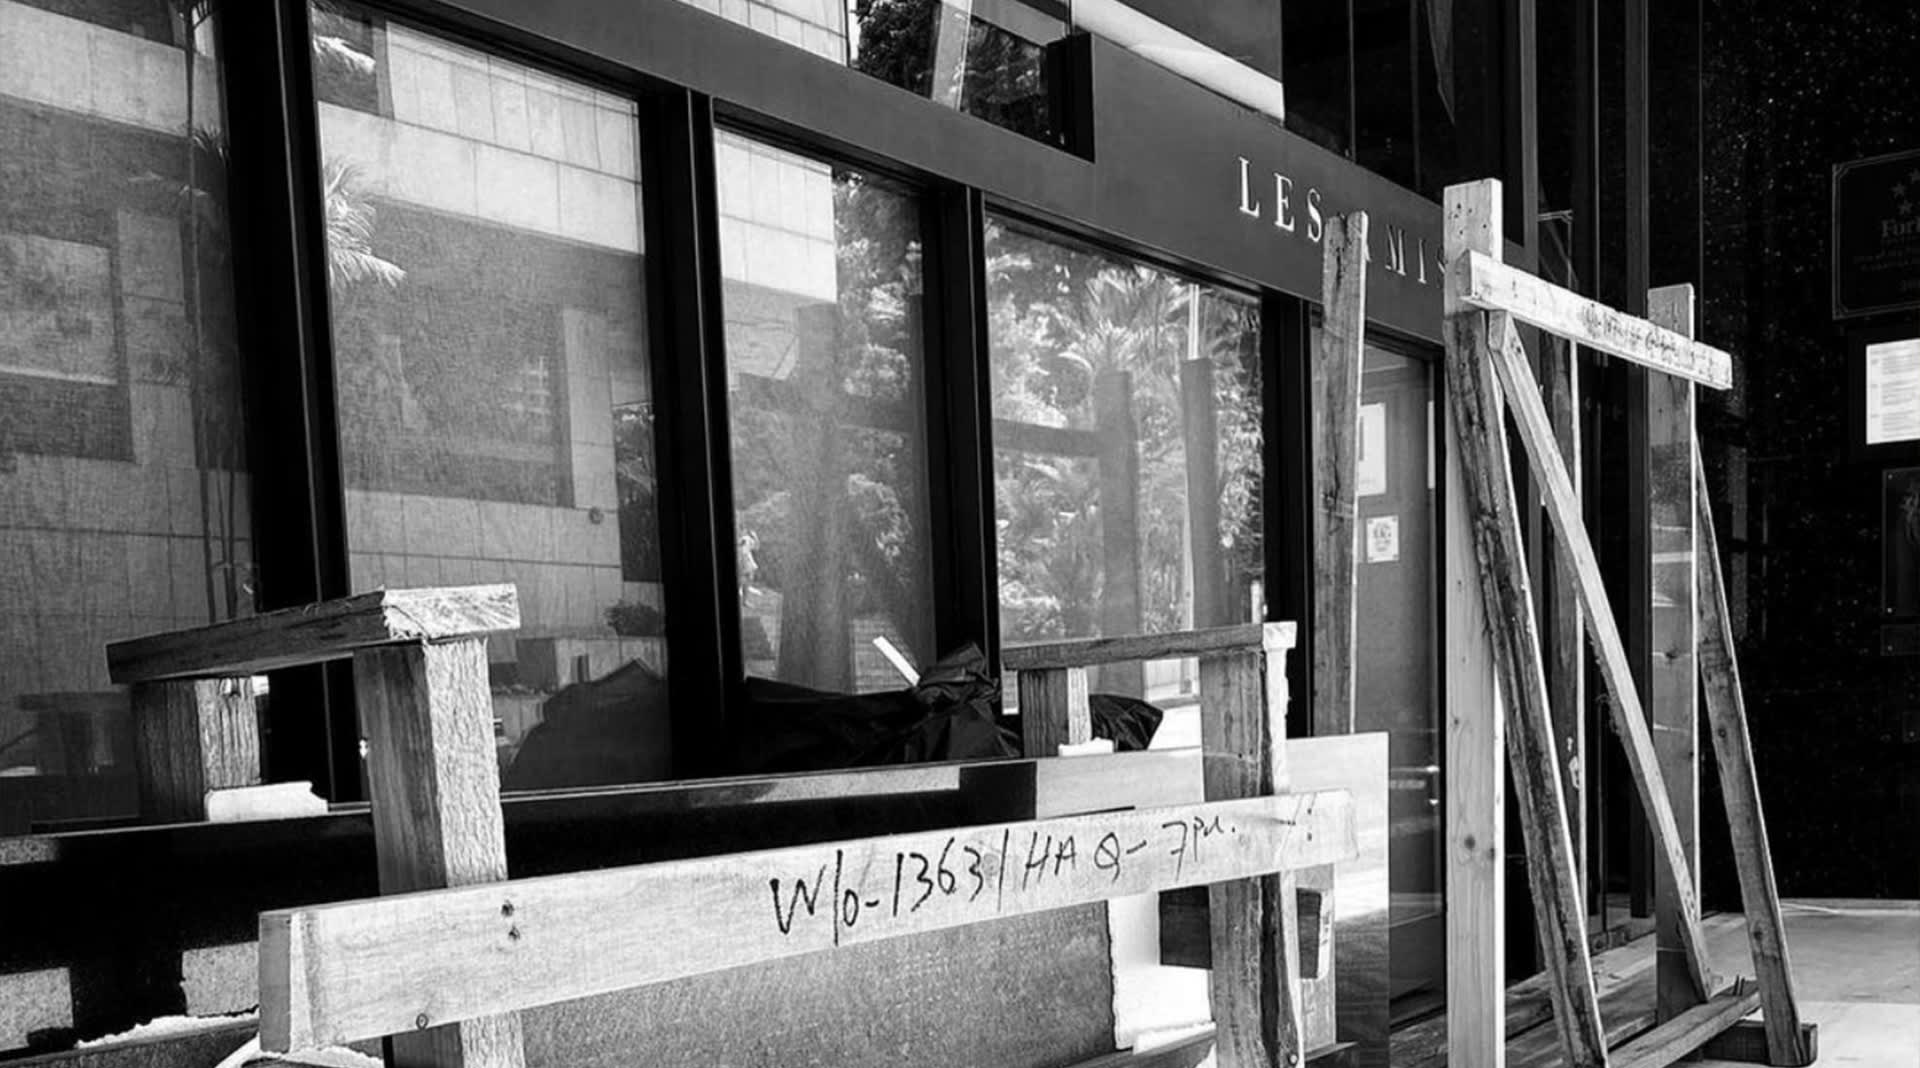 Les Amis has emerged after a month-long renovation. What can diners expect?